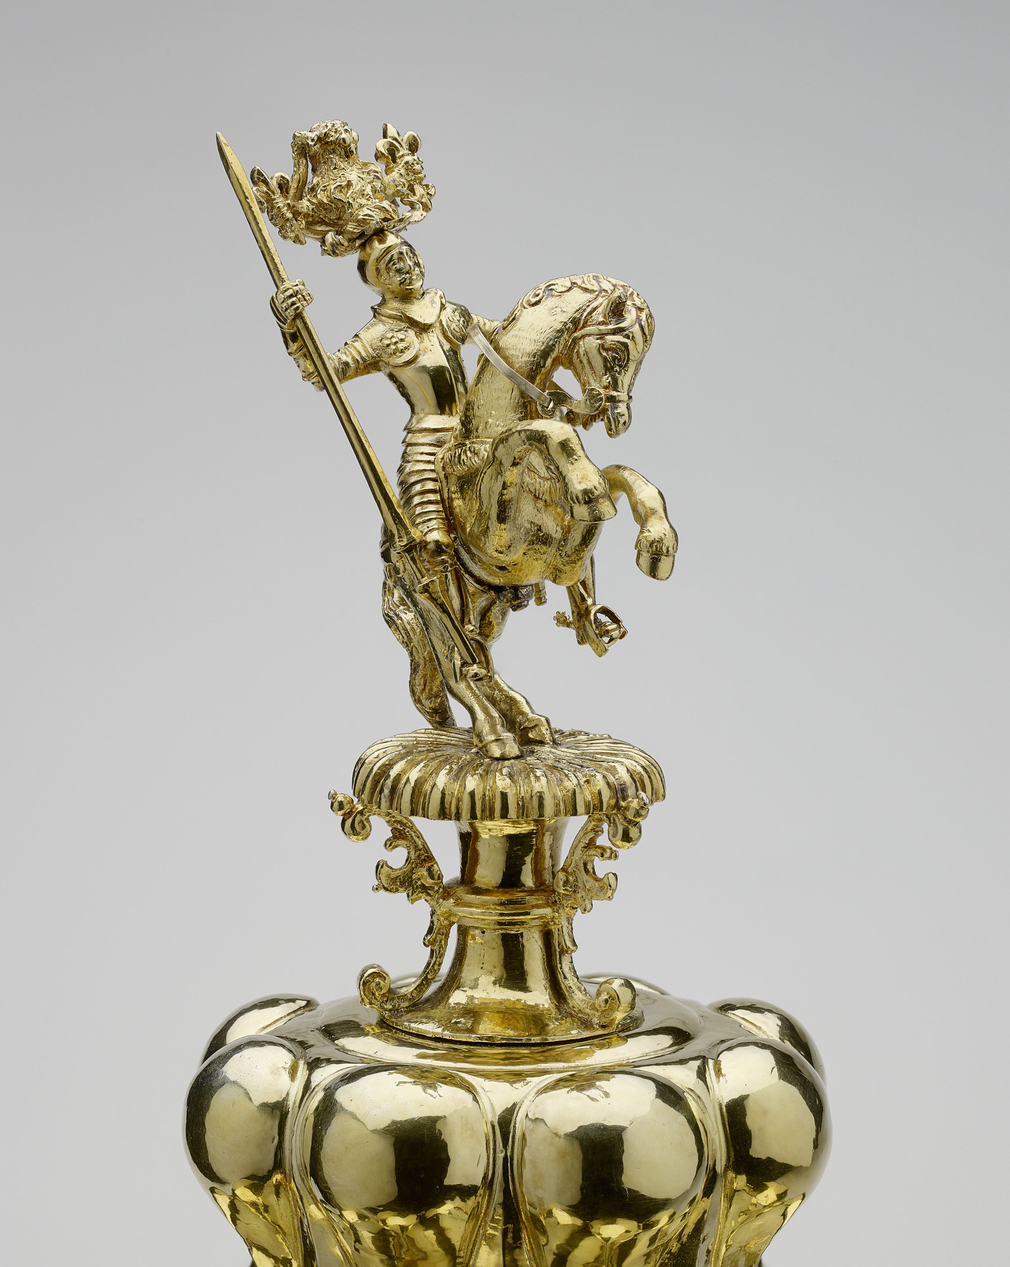 <p>The cup has a high lobed foot mounted with small cast animals &ndash; lizards, snails, a tortoise, a beetle, and a scorpion &ndash; among plants and shells. The stem is formed from the figure of Mucius Scaevola, carrying a gadrooned shield on his left